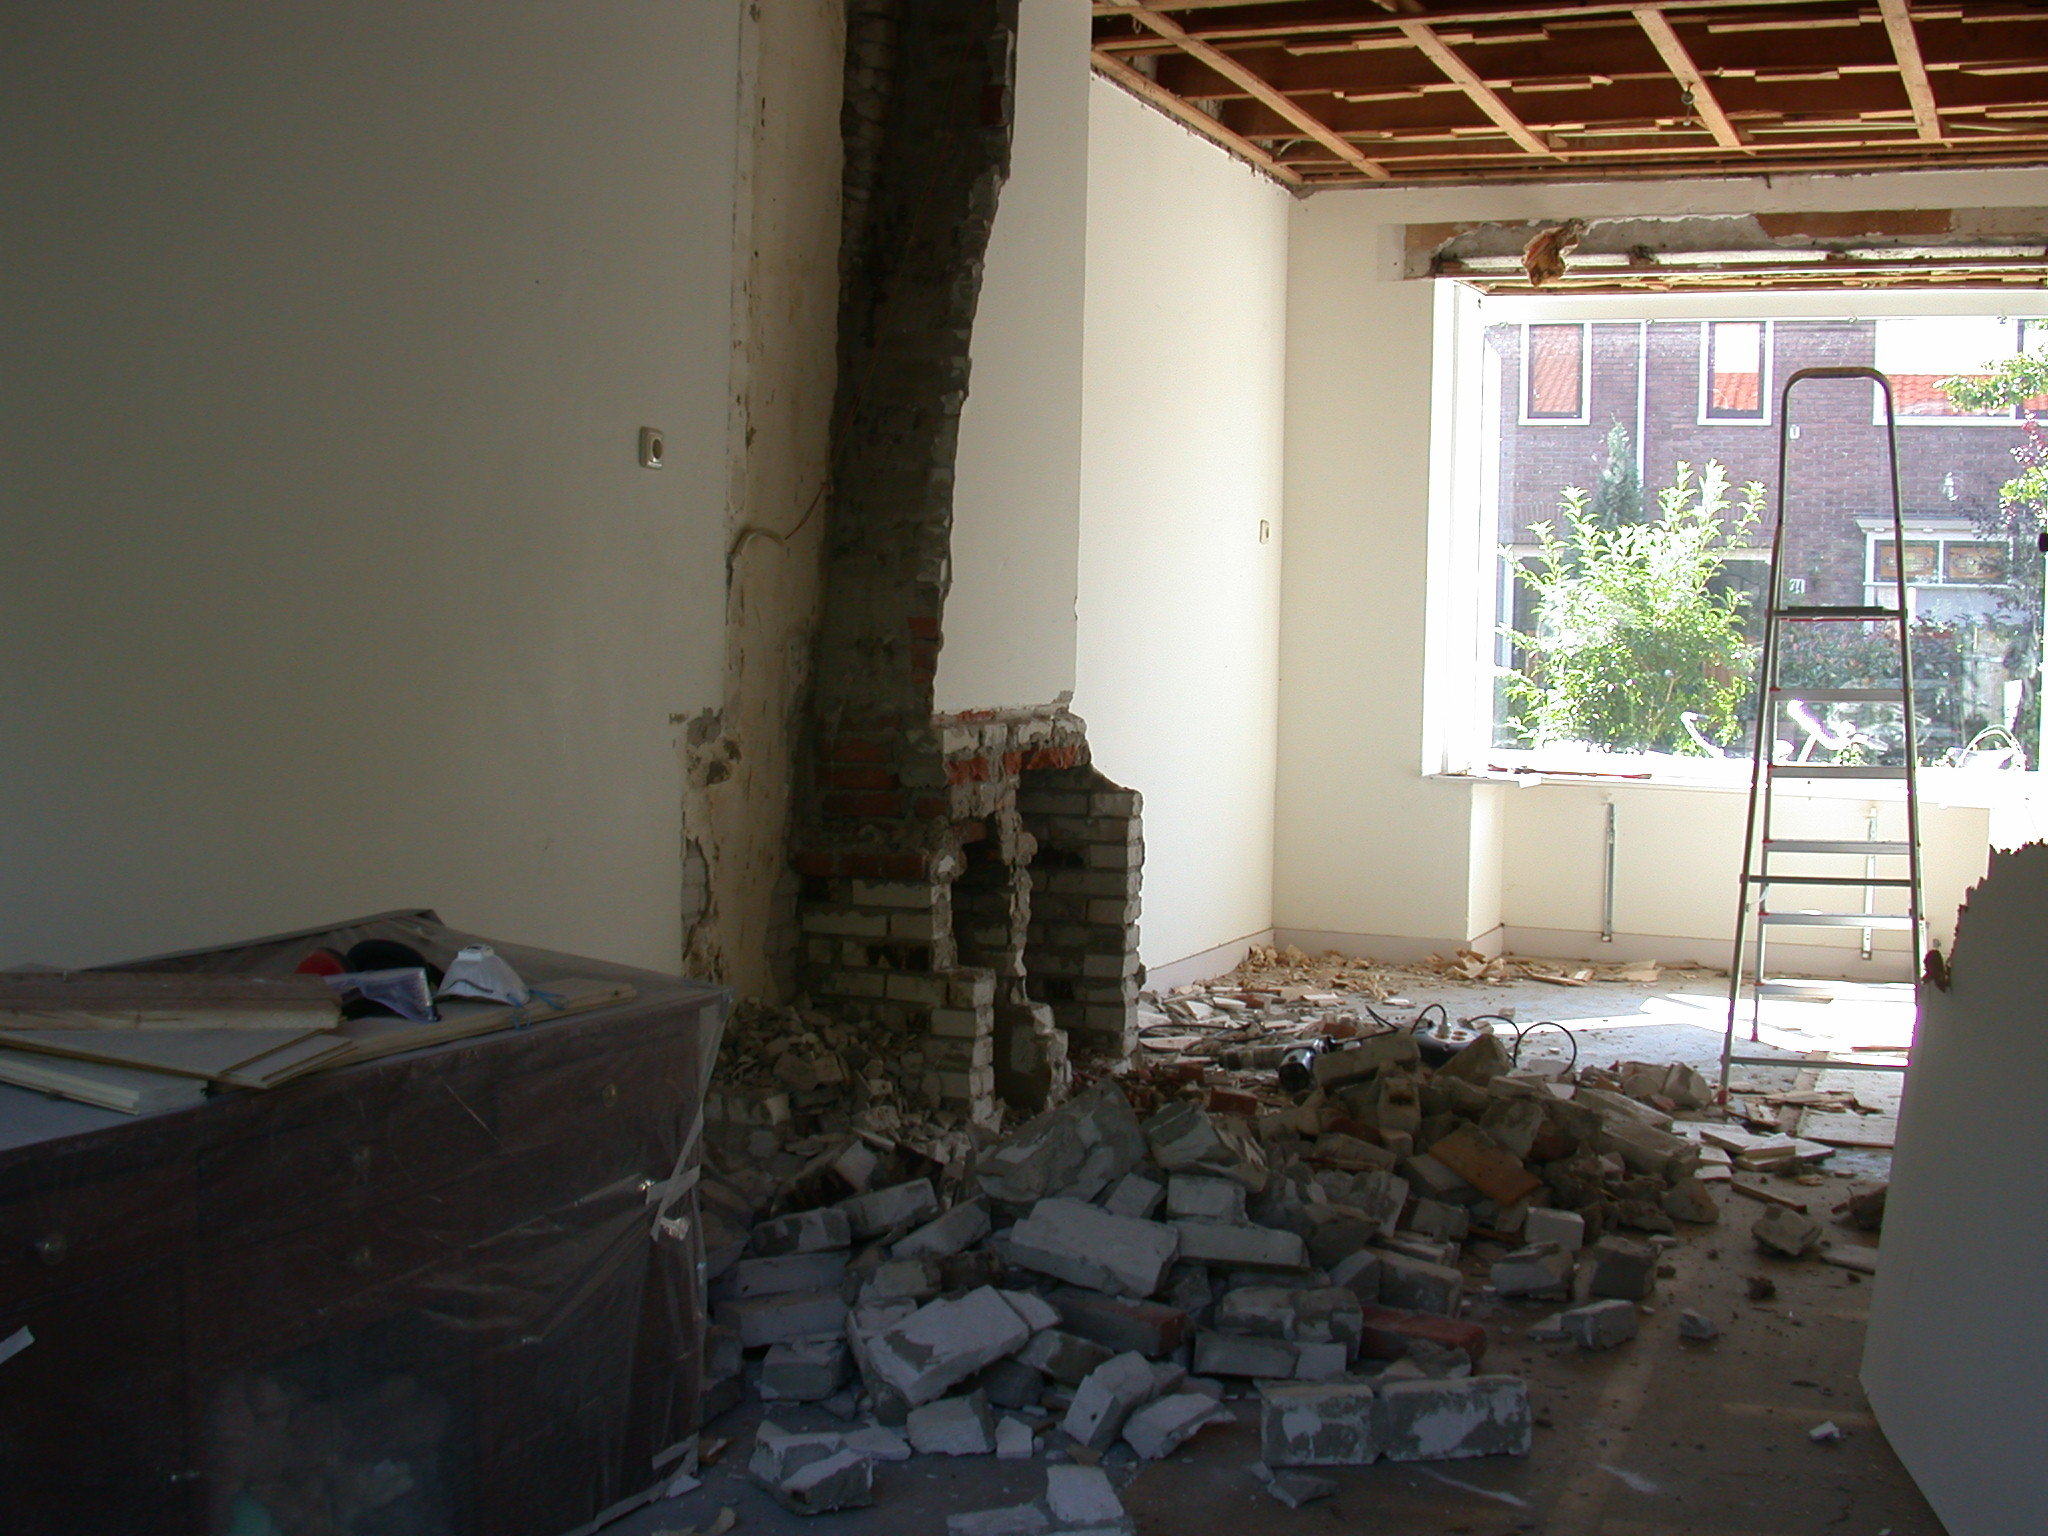 architecture interiors houseredecoration redecoration rebuild demolish demolished rubble room home